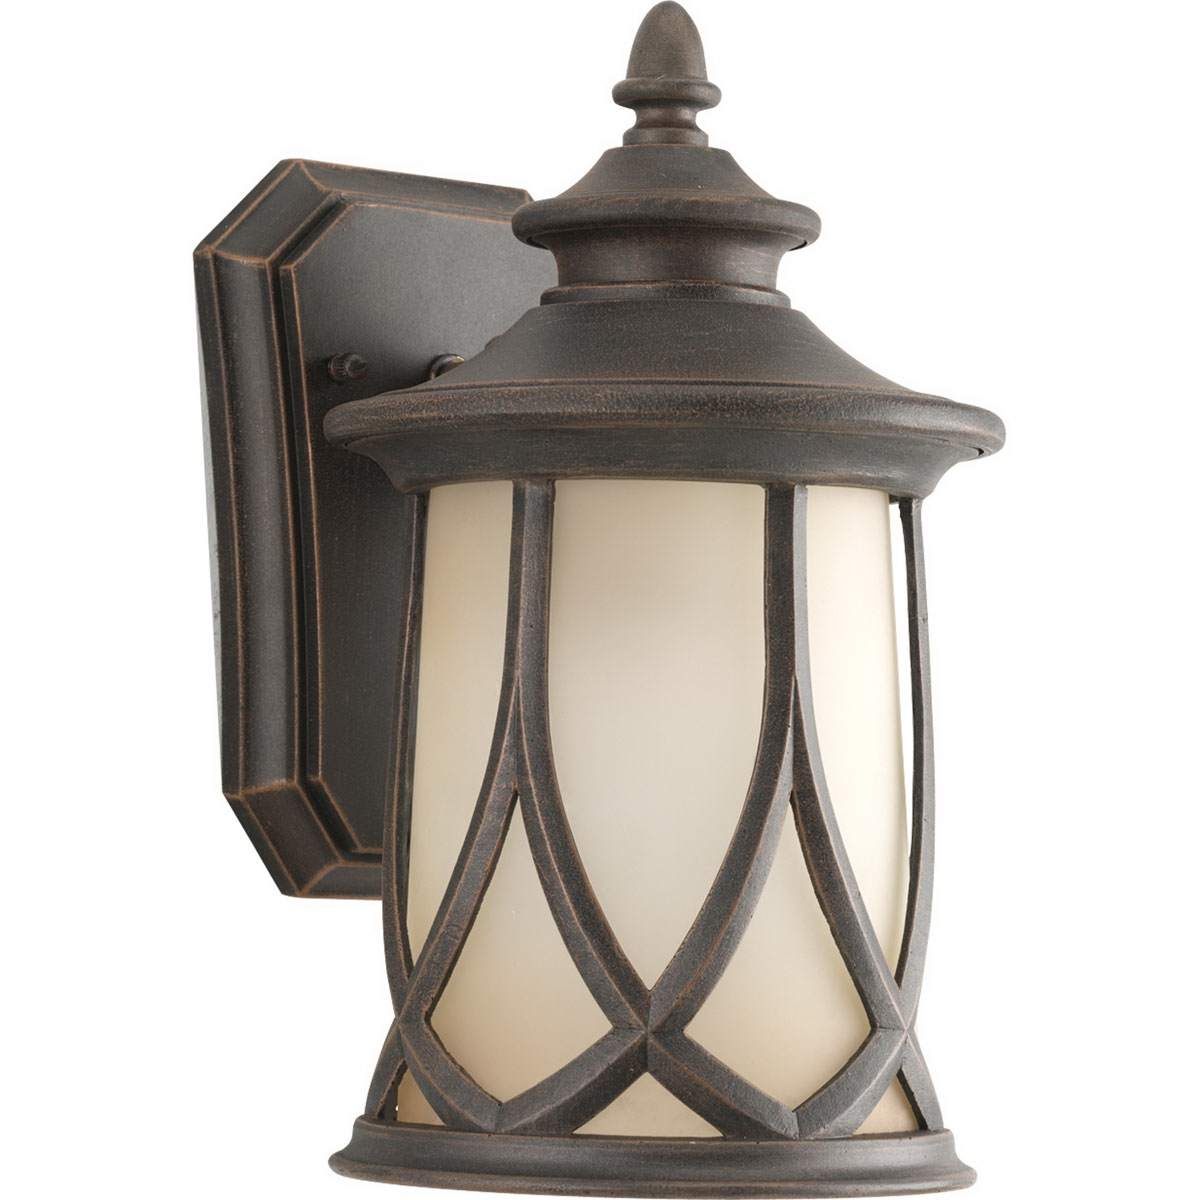 Progress Lighting P5987-122 1-Light Resort Collection Outdoor Wall Lantern 100 Watt  Aged Copper